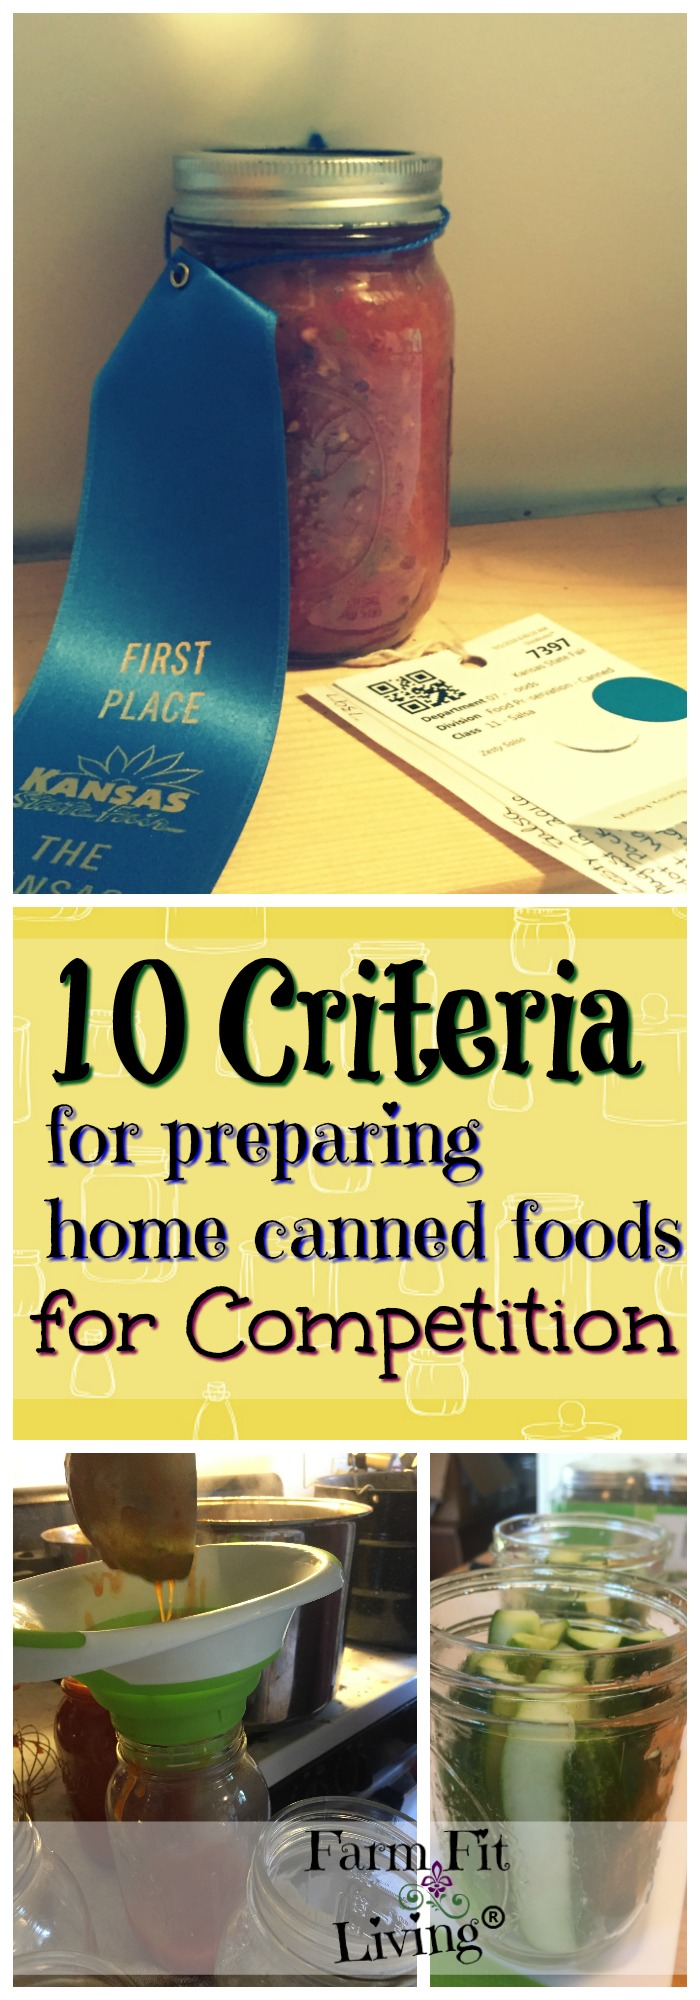 Interested in becoming a better home canner? Why not enter your canning to be judged? Here's 10 Criteria for Preparing Home Canned Foods for Competition.